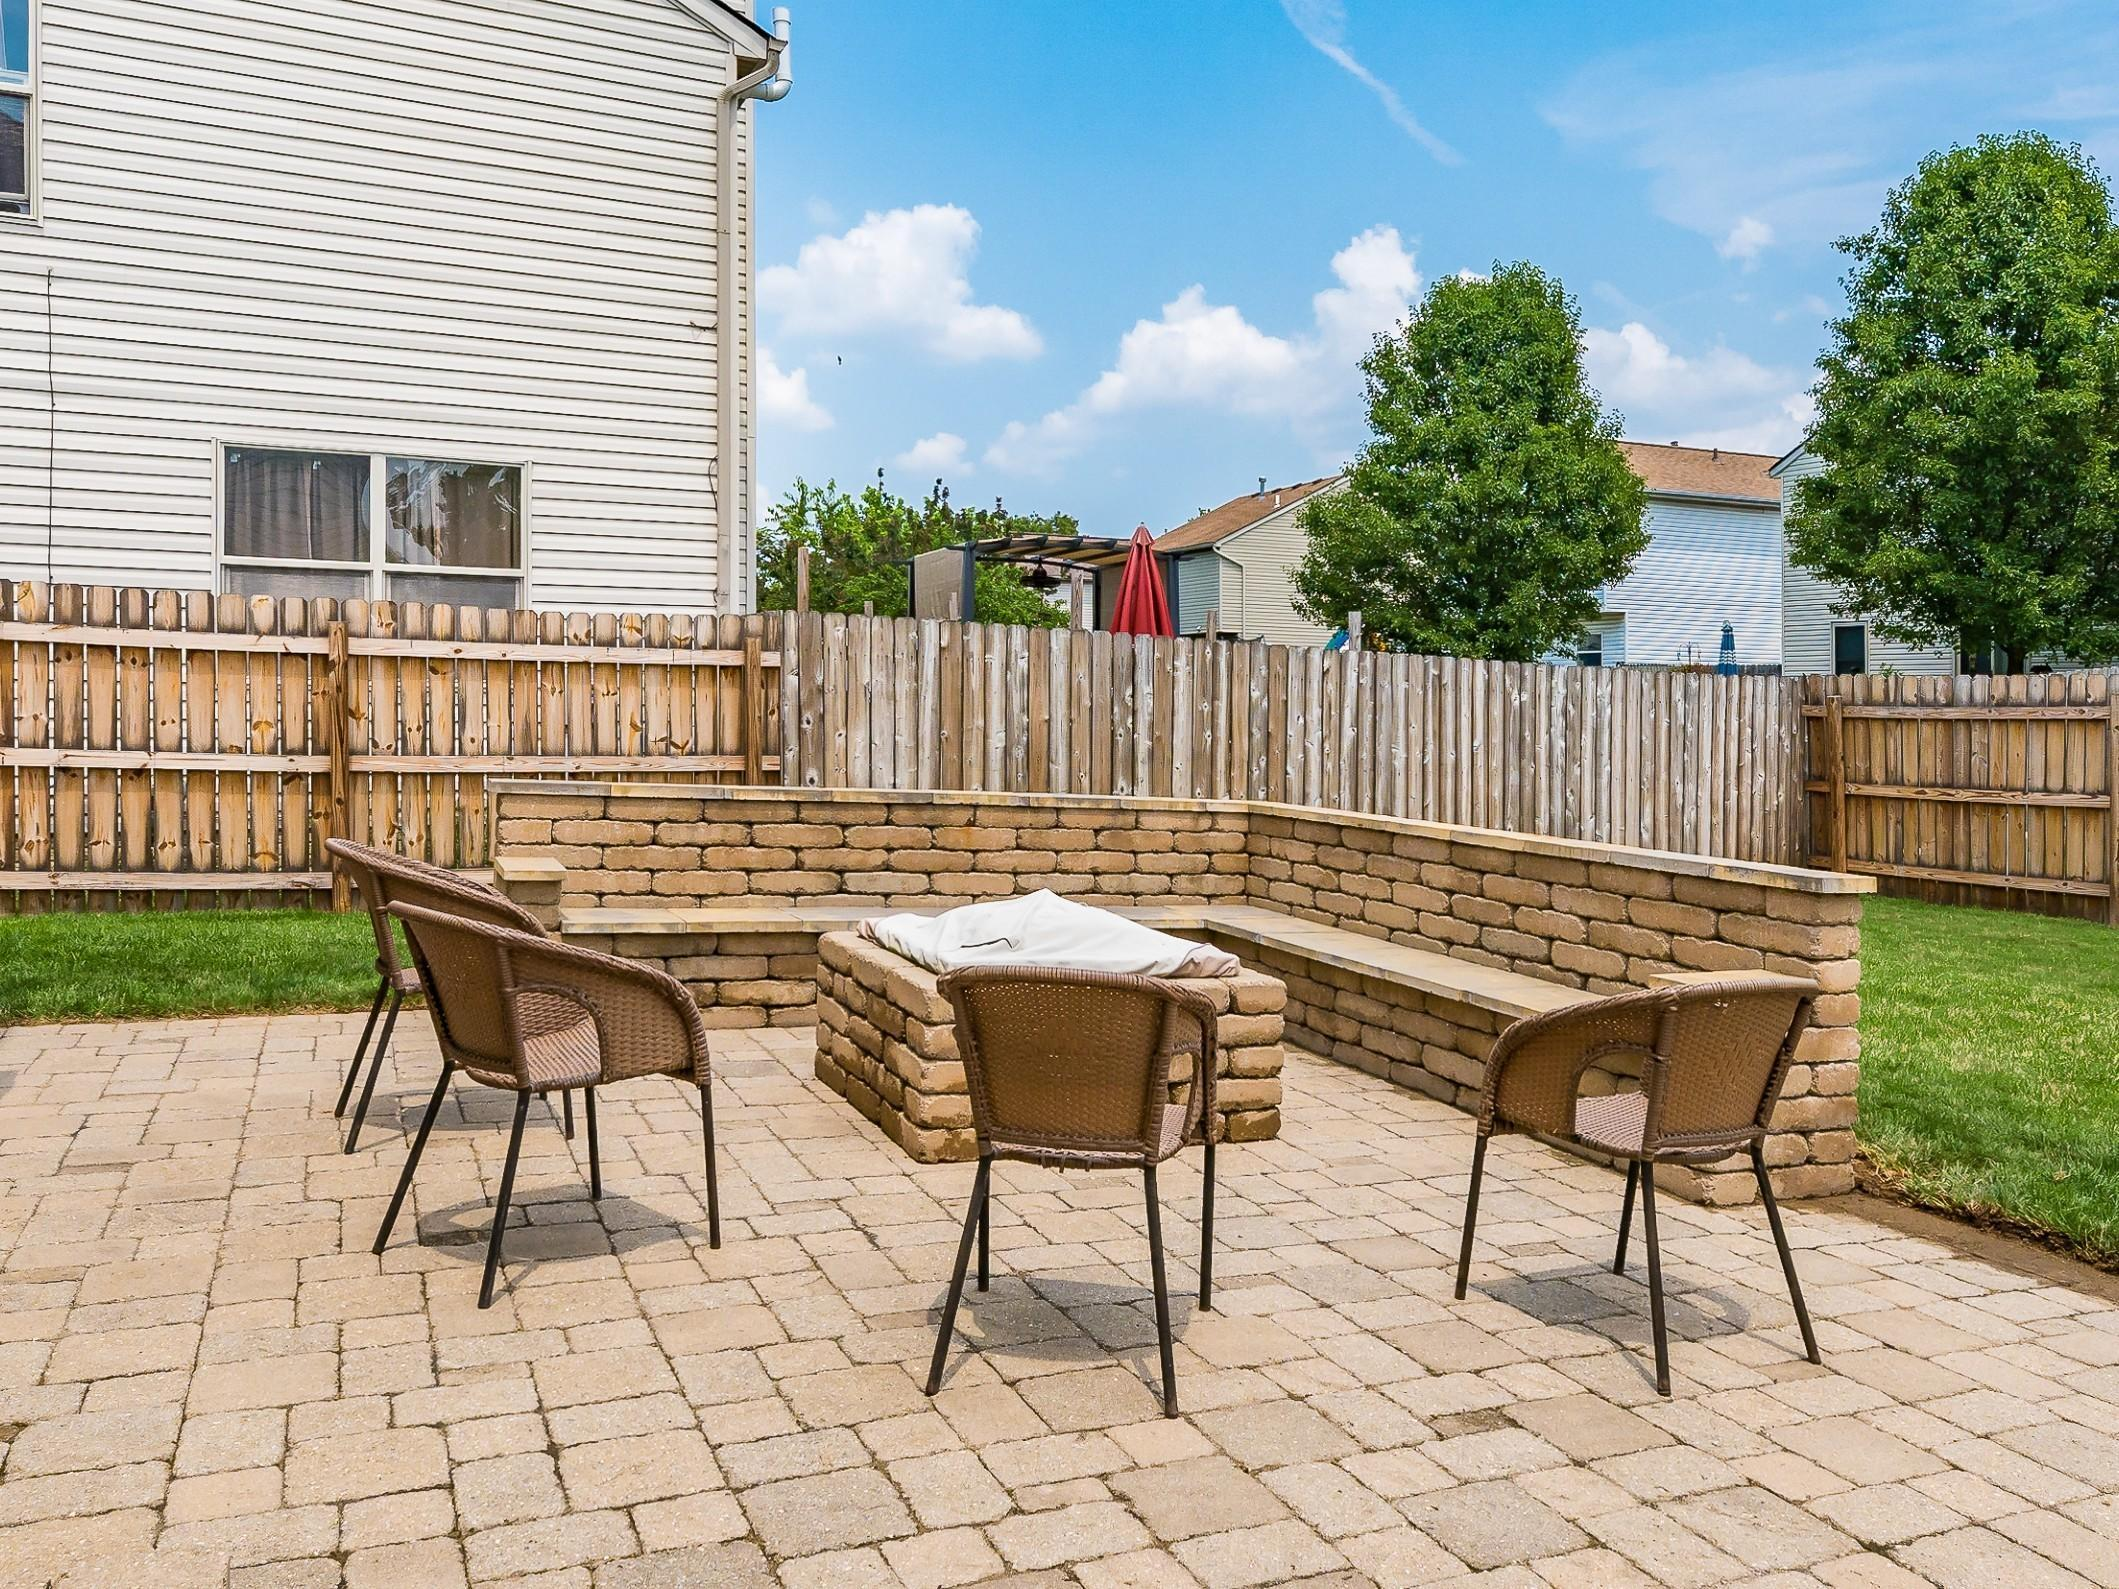 Integrated seating/Fire Pit Area